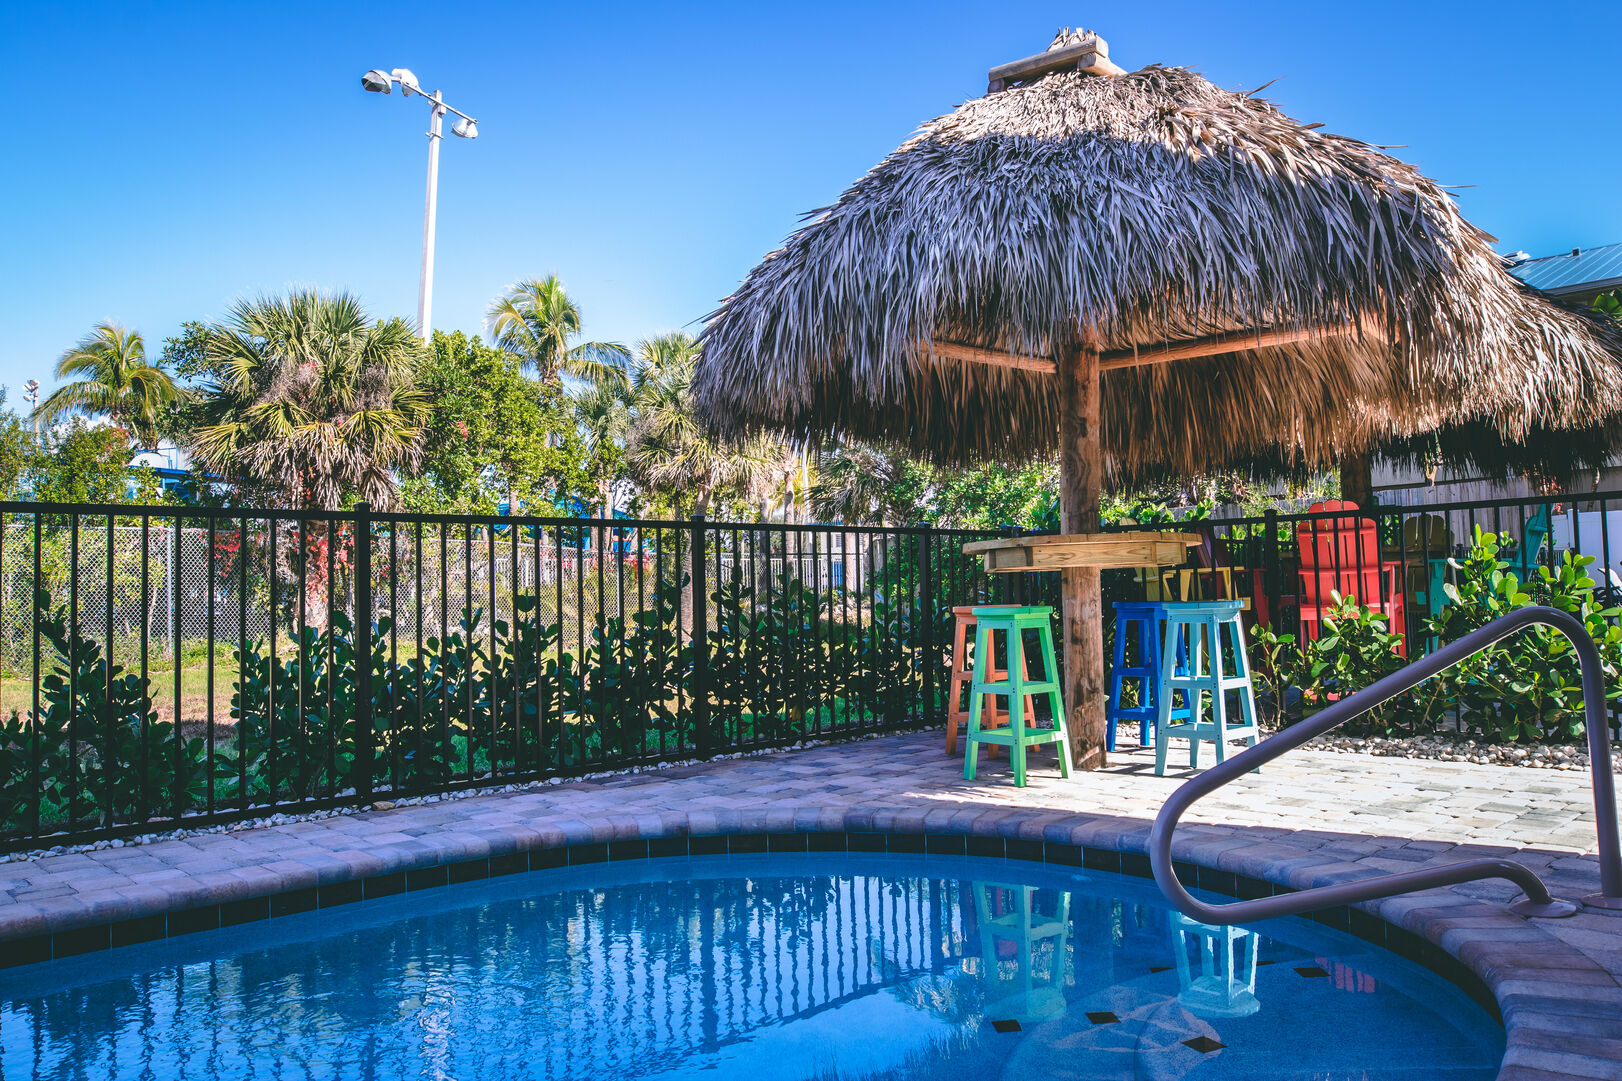 Pool area outside of this vacation rental Fort Myers Beach Florida